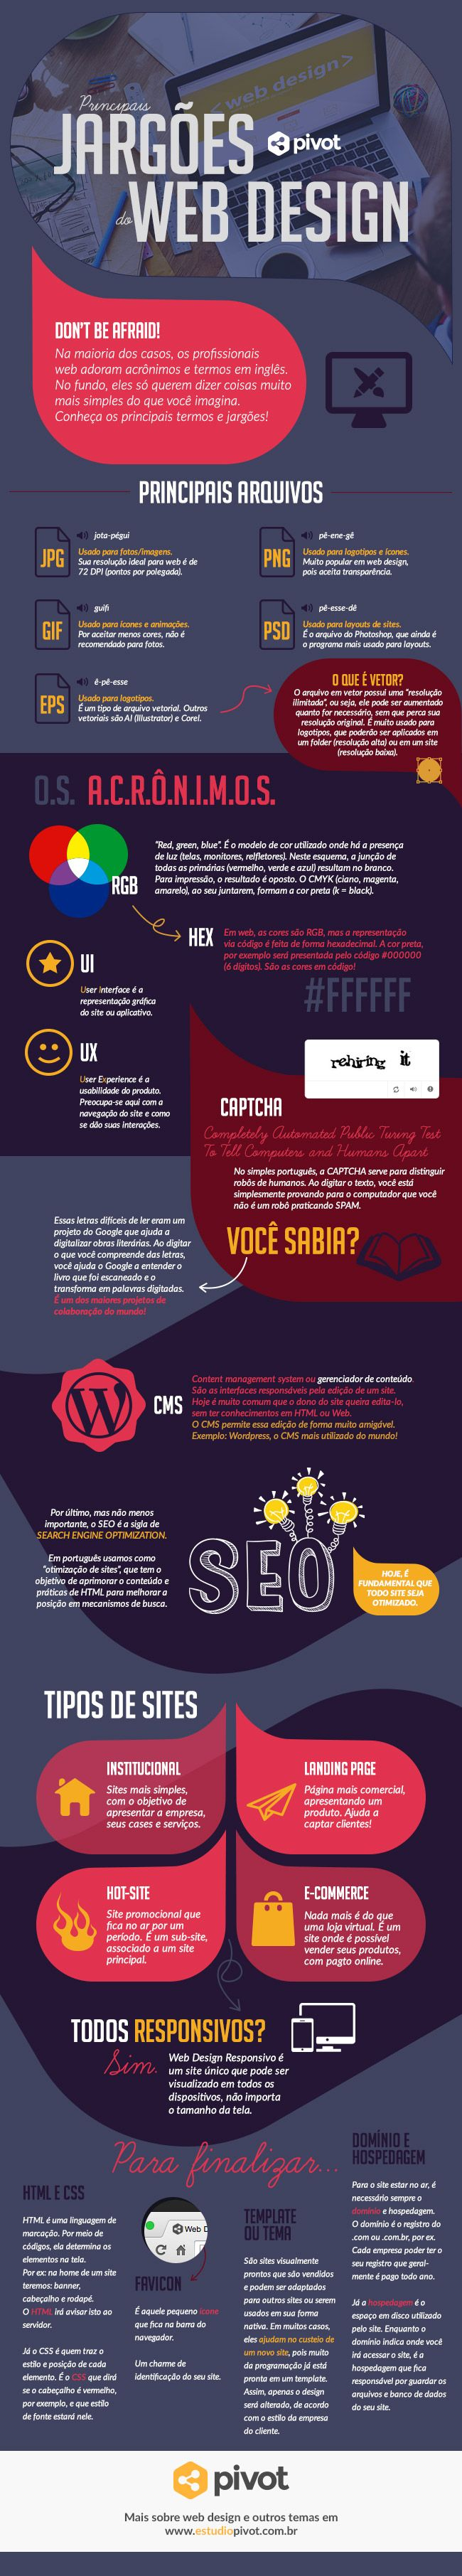 jargoes-do-web-design                                                                                                                                                                                 Mais